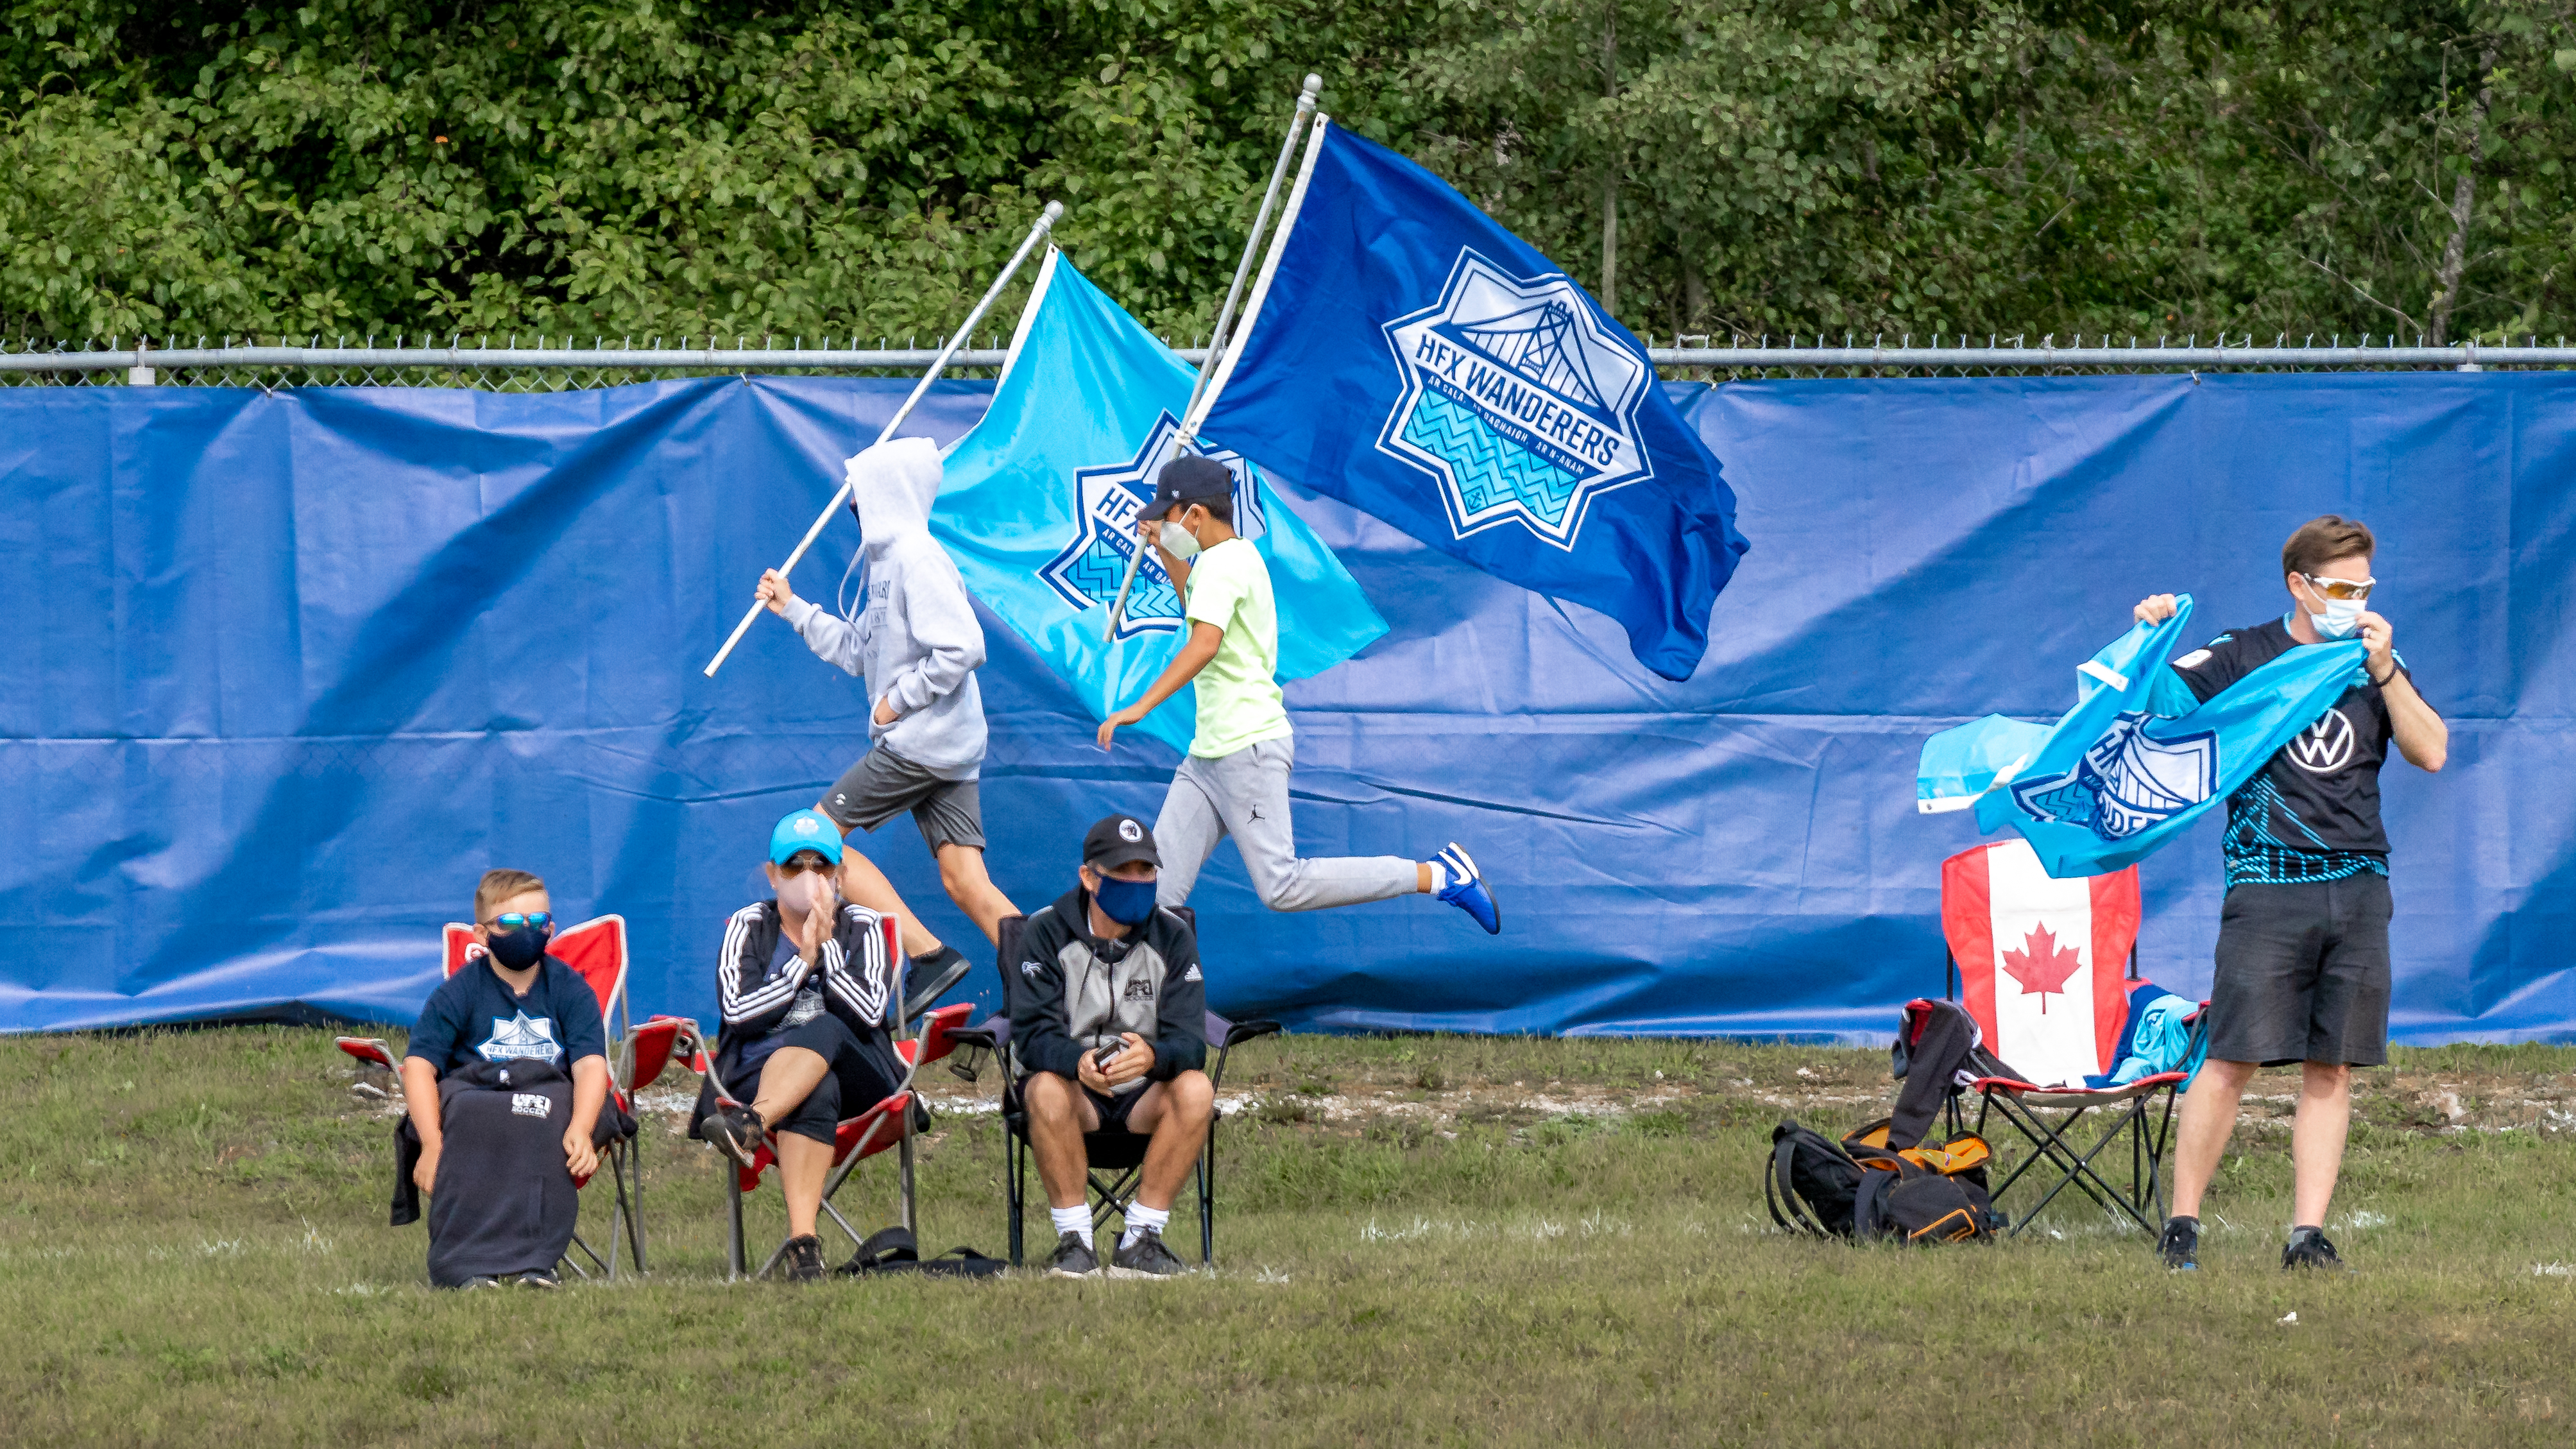 HFX Wanderers fans on PEI. (CPL/Chant Photography)